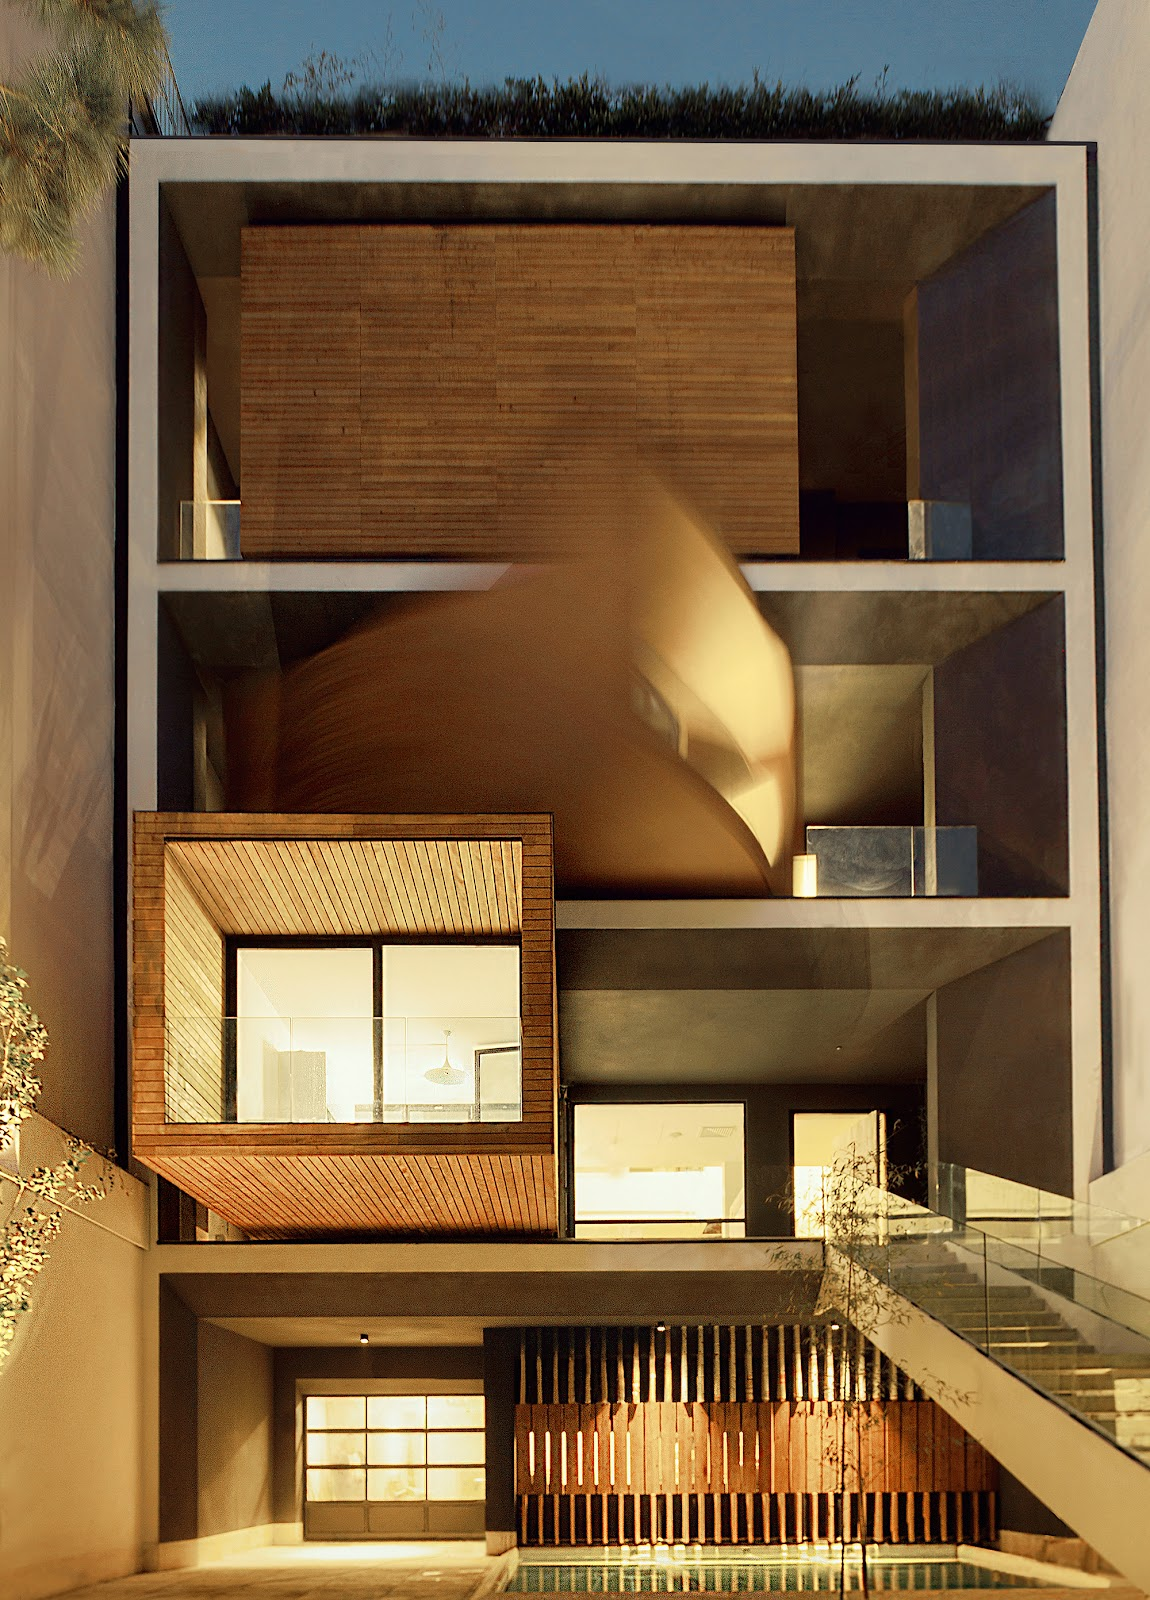 02-Nextoffice-Sharifi-Ha-House-Revolving-Rooms-Architecture-www-designstack-co